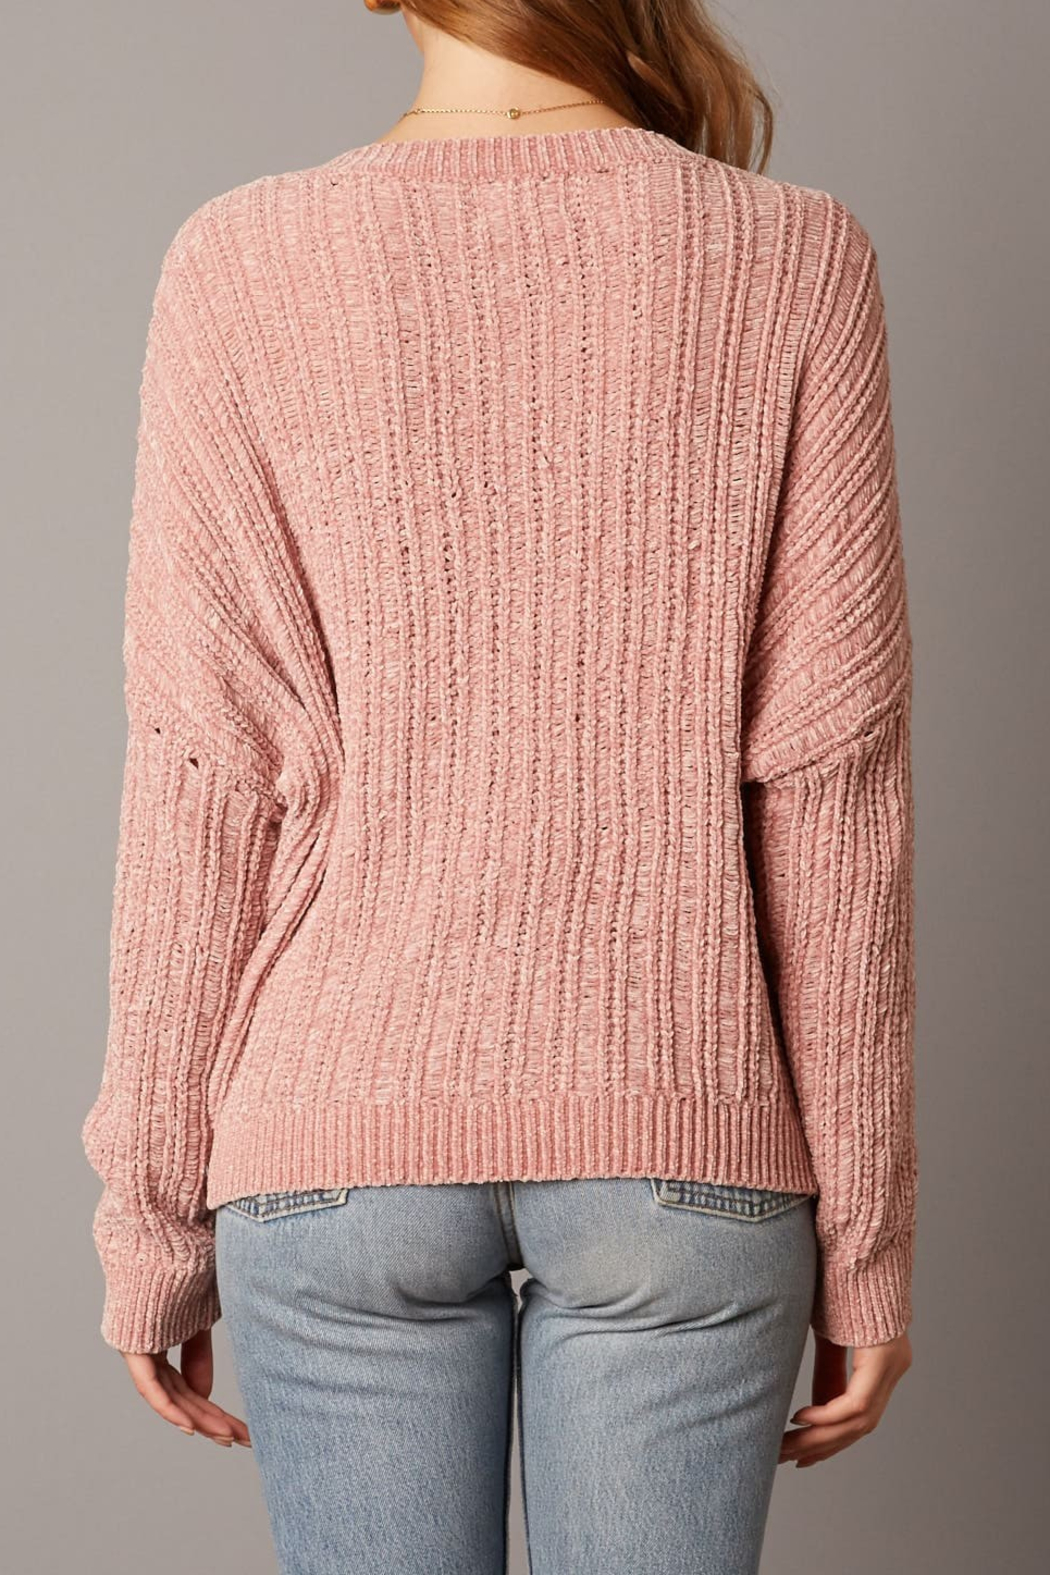 Cotton Candy LA Ribbed Sweater - Back Cropped Image